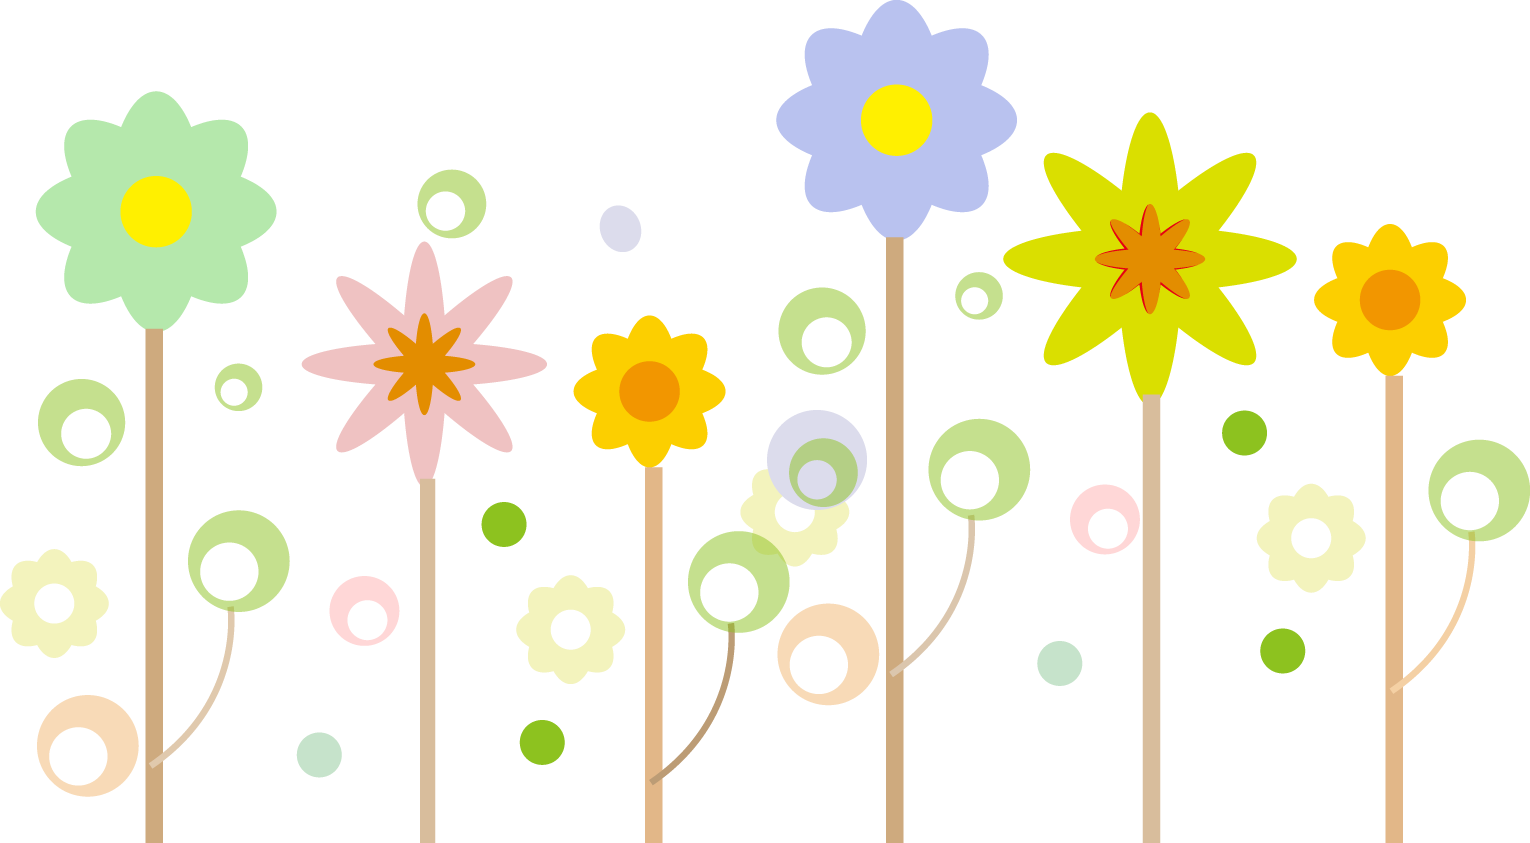 Flower Download Vectors Icon Free image #17963